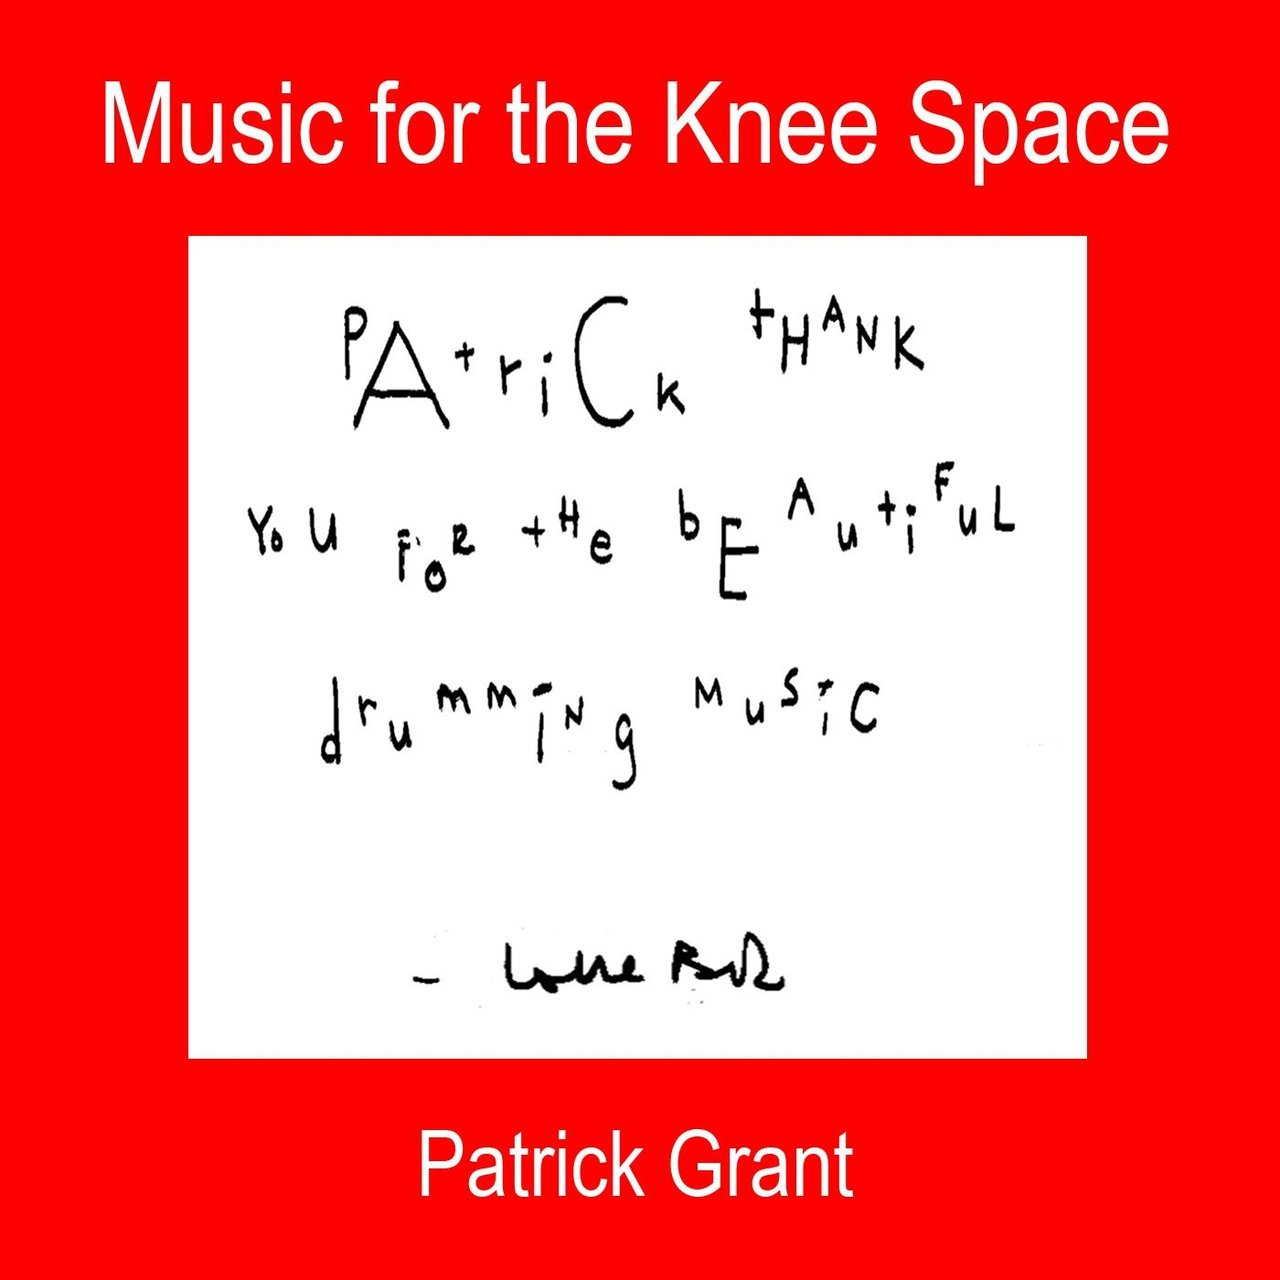 Music for the Knee Space